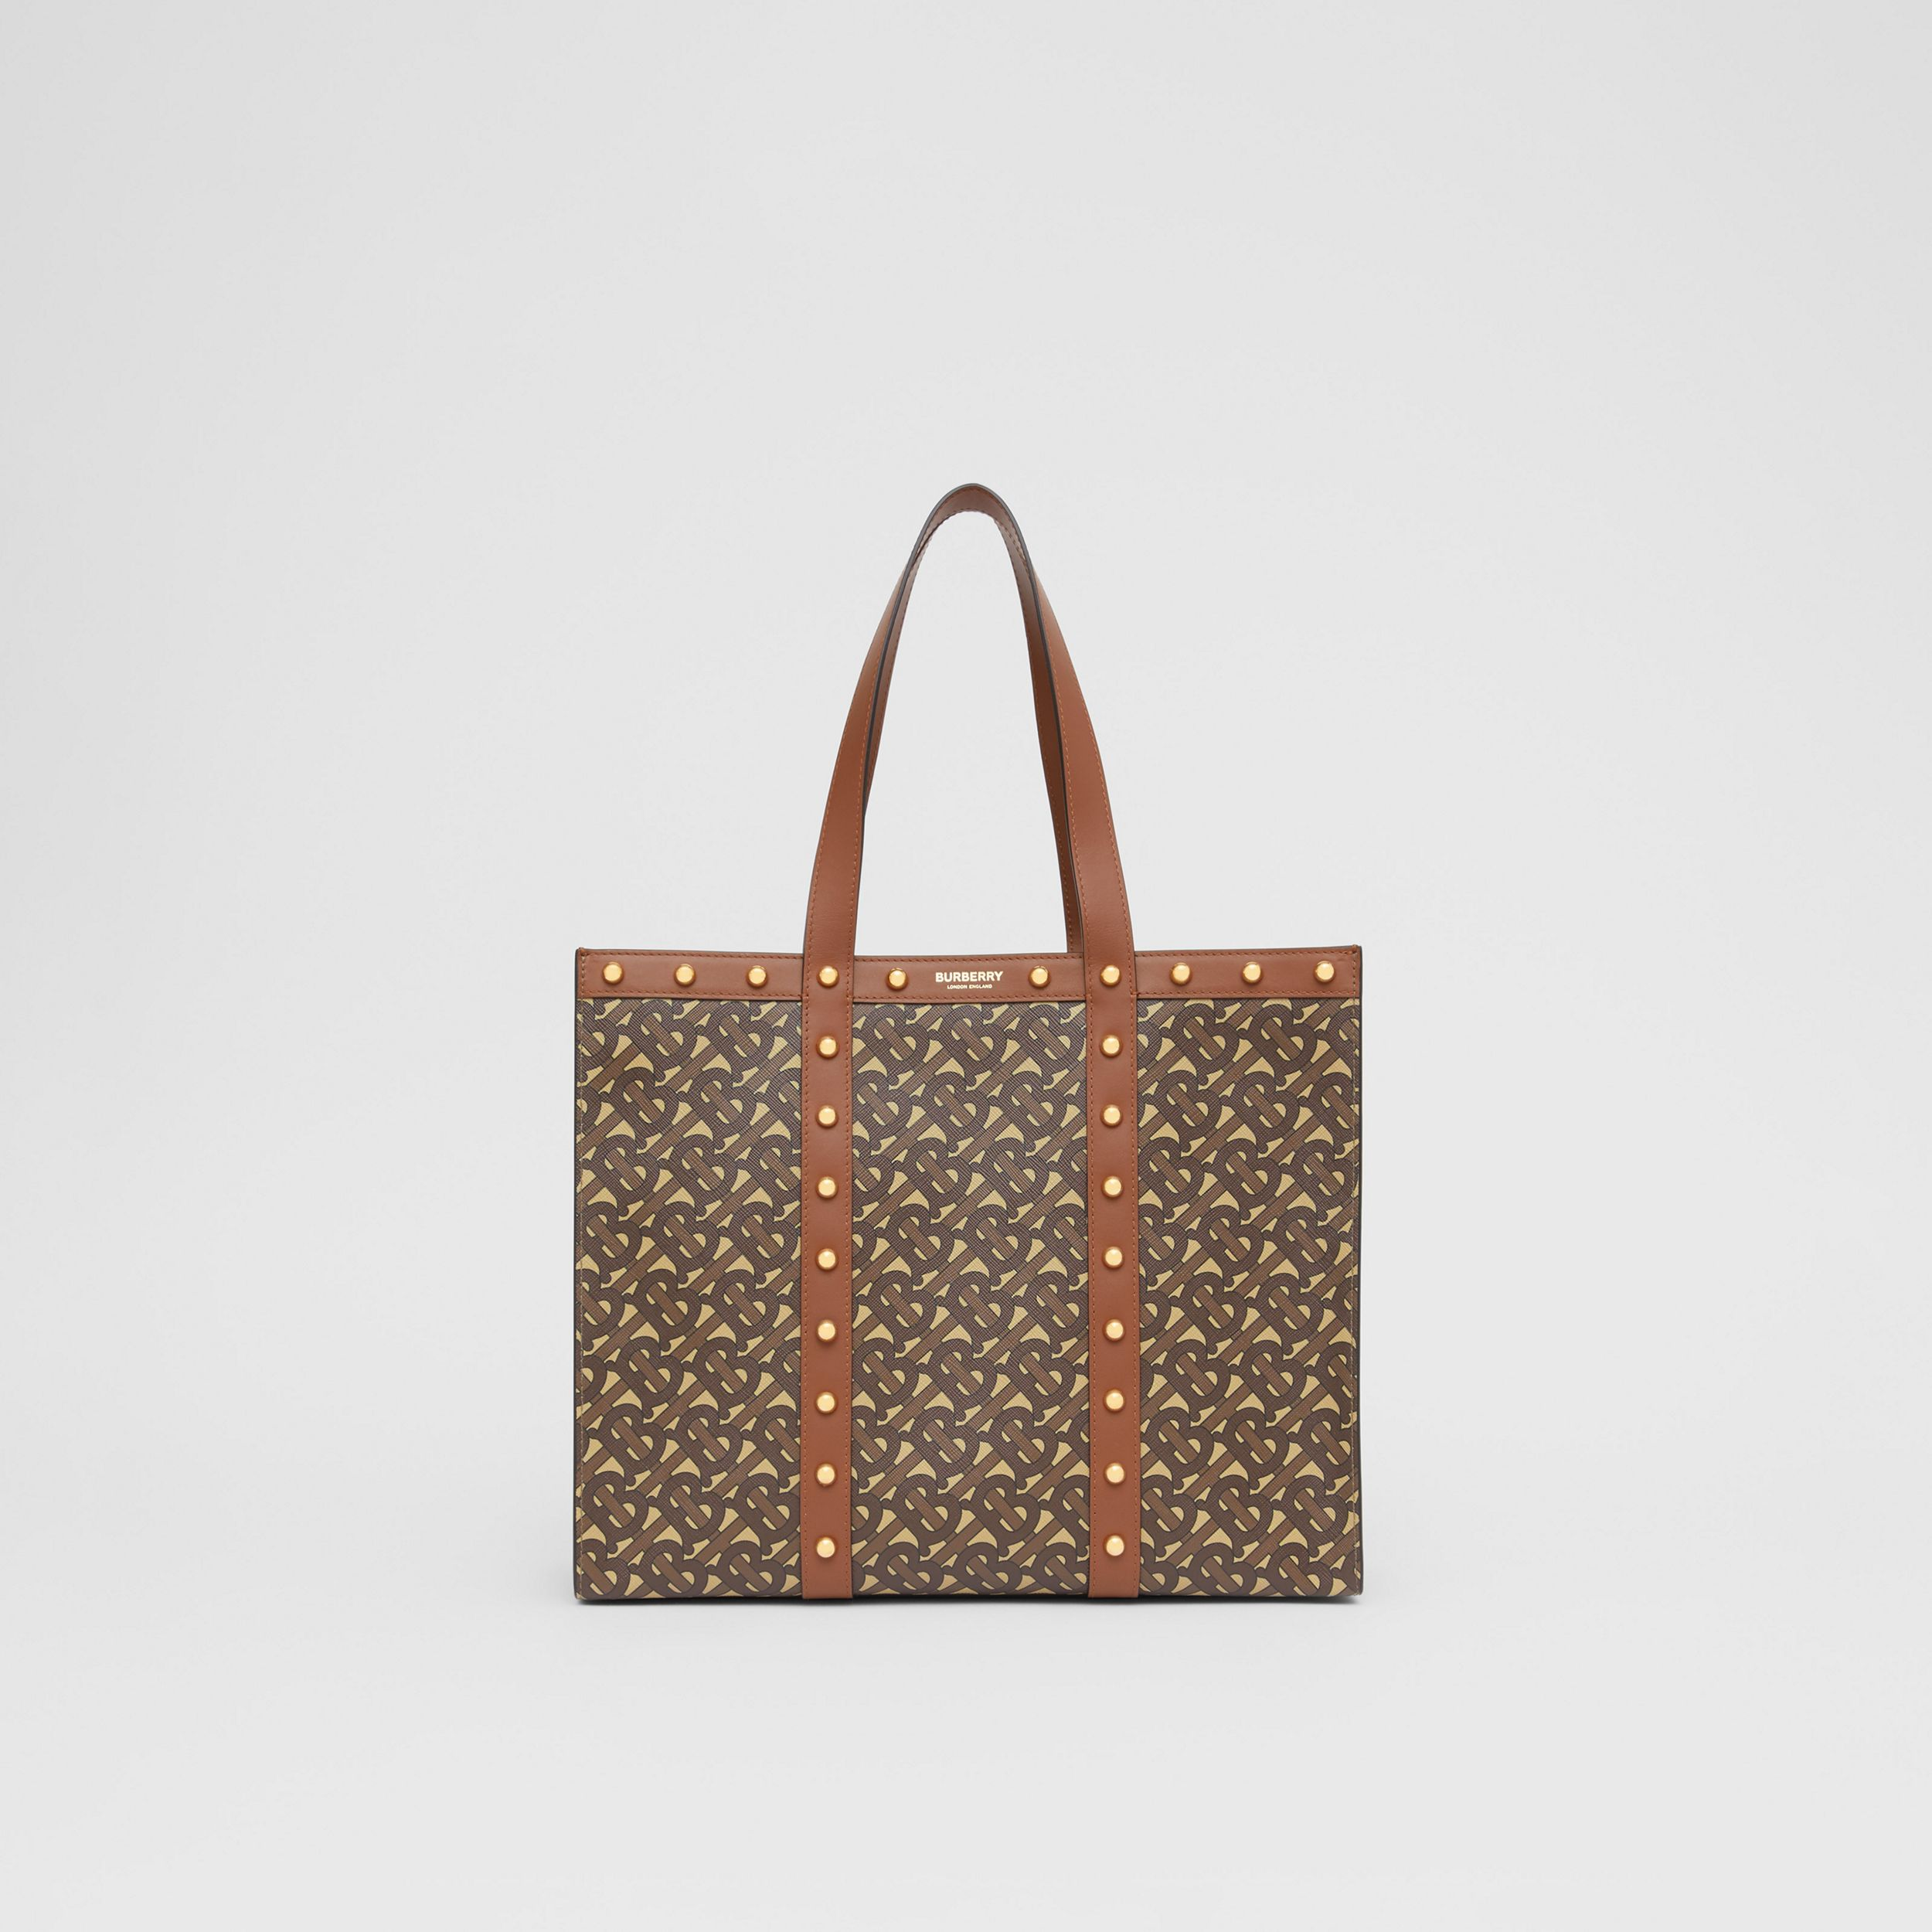 Small Monogram Print E-canvas Tote Bag in Tan | Burberry - 1